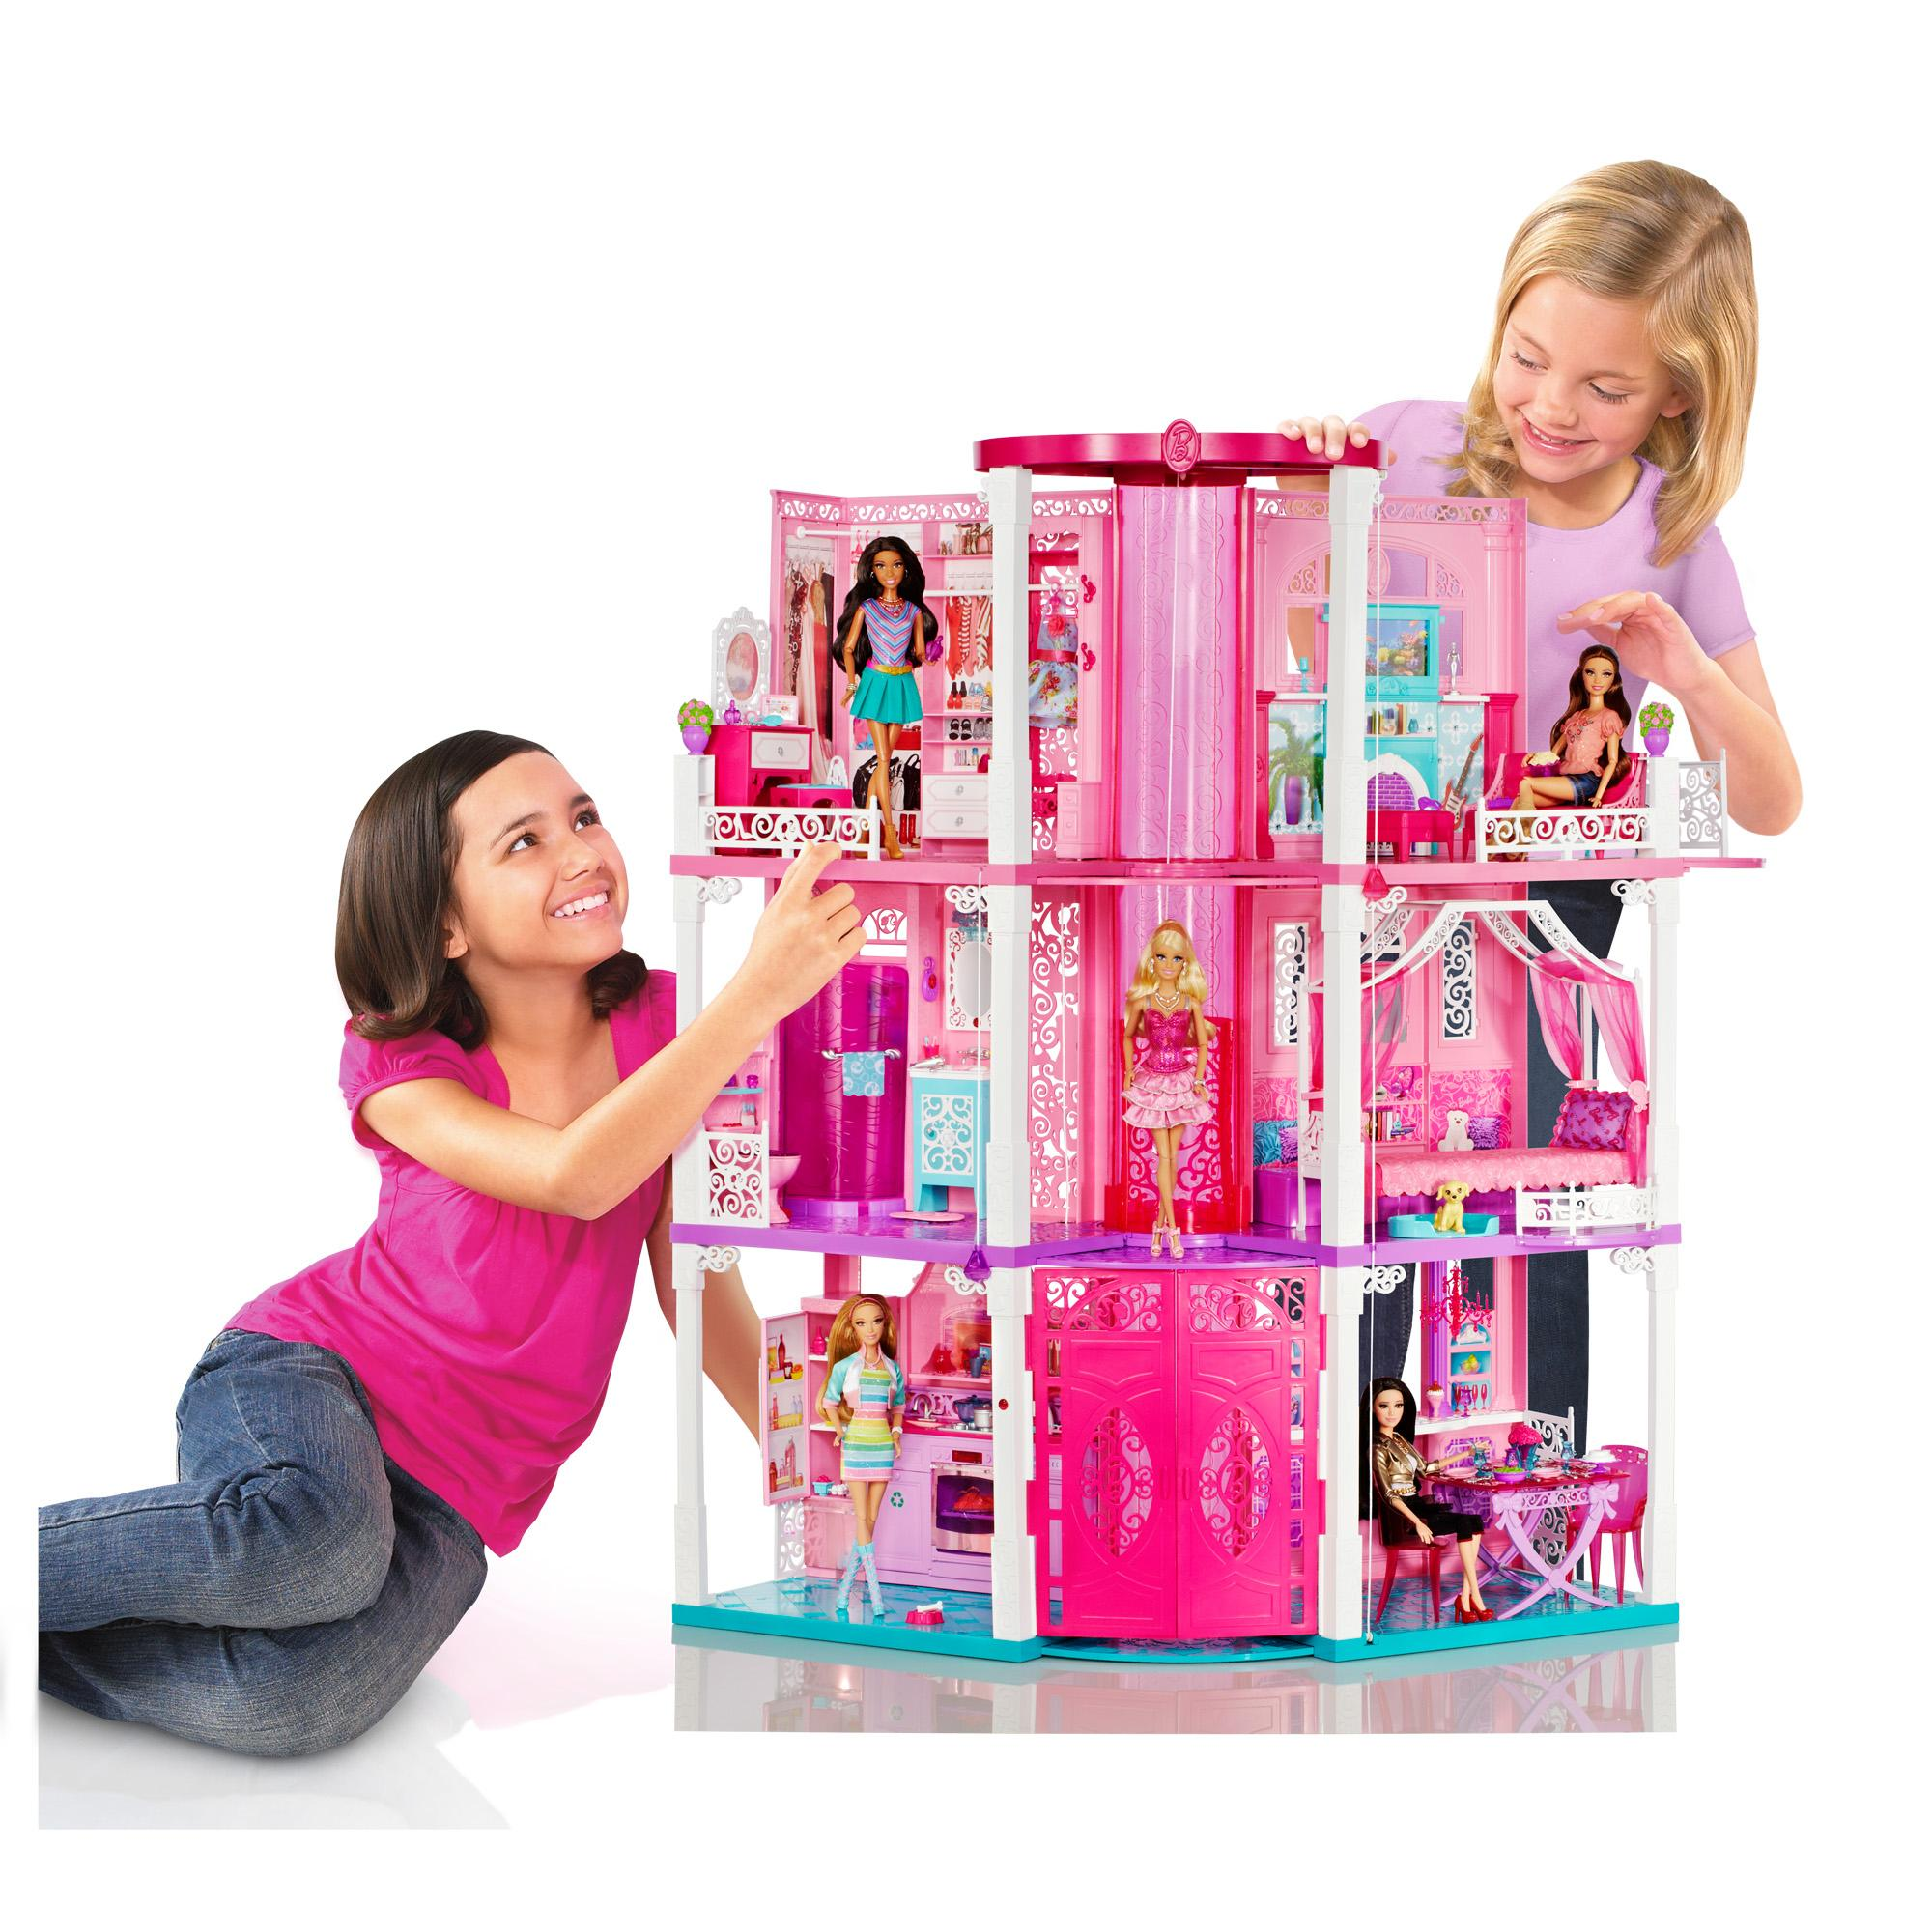 Barbie Dream Hous: Barbie Doll By Mattel 3 Story Deluxe Folding Townhouse